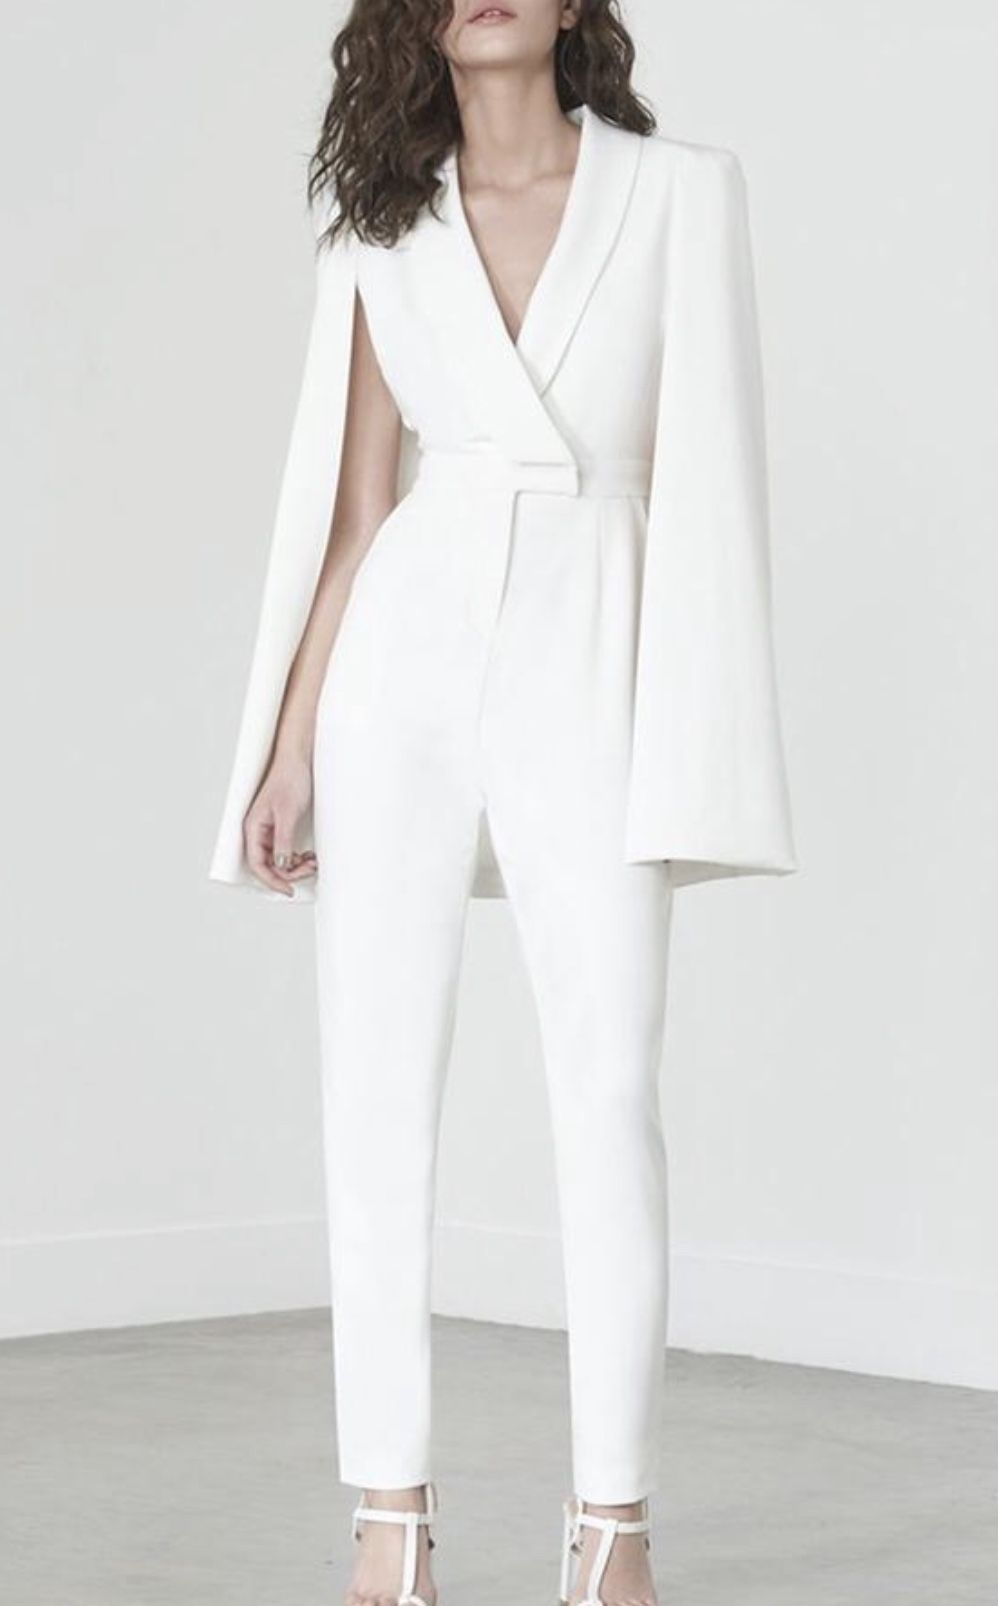 White Deep V Cape Sleeves Slinky Jumpsuit in My Style